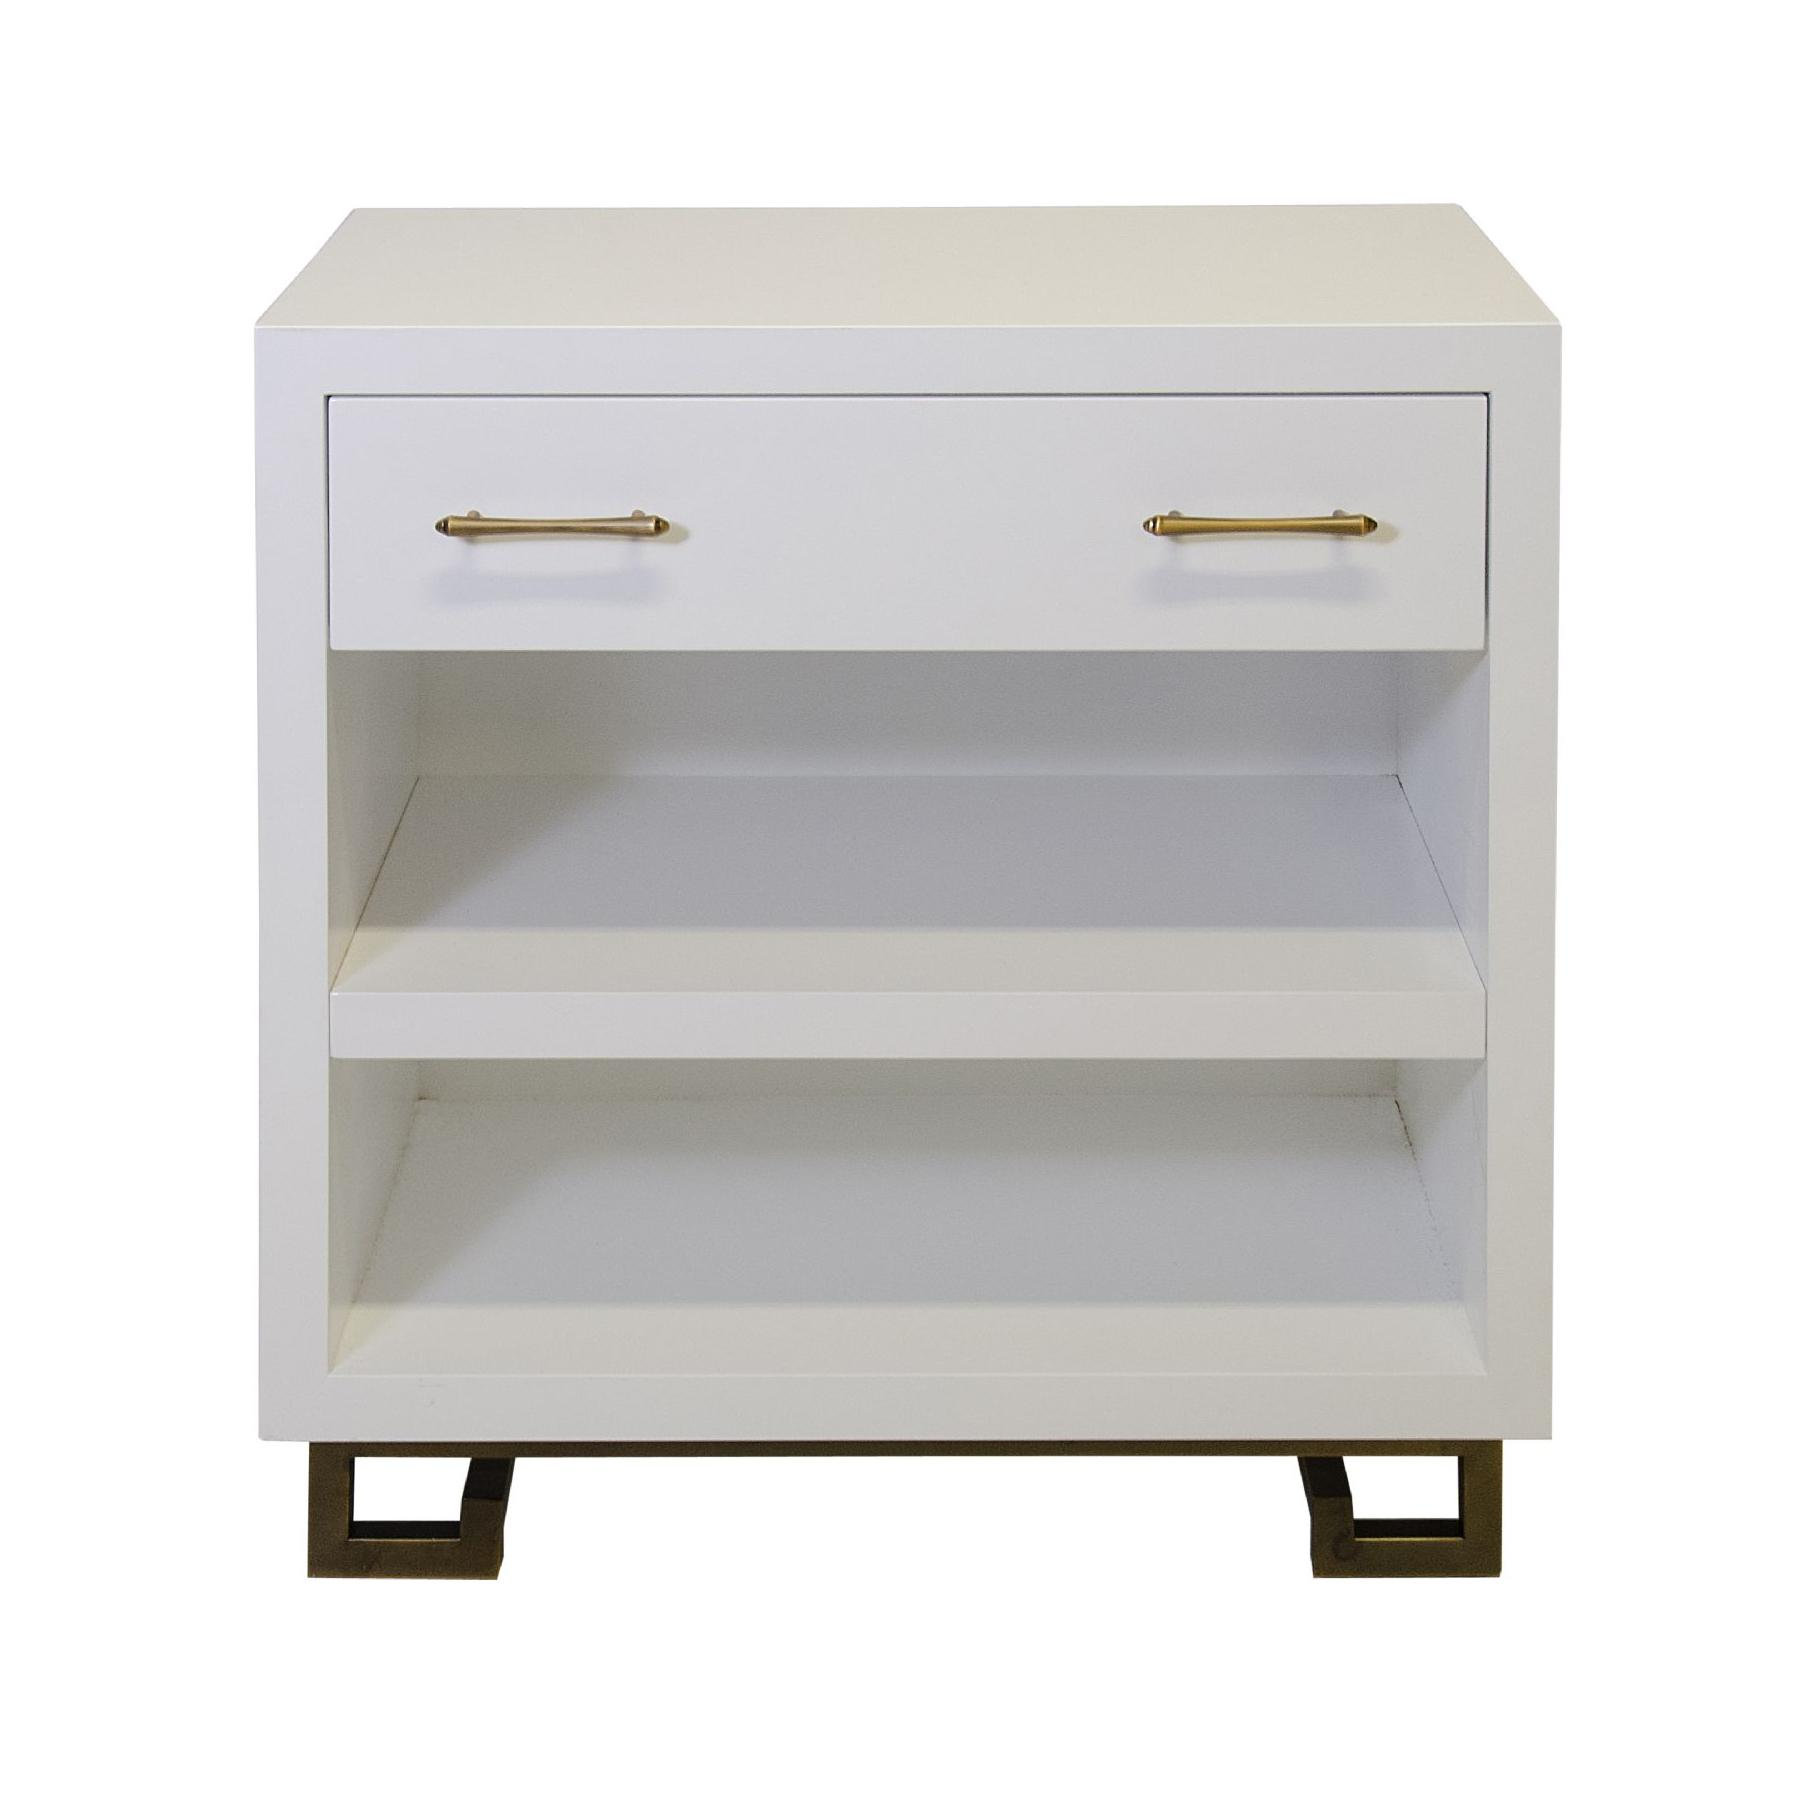 1800x1800px 8 Top White Lacquer Nightstand Picture in Furniture